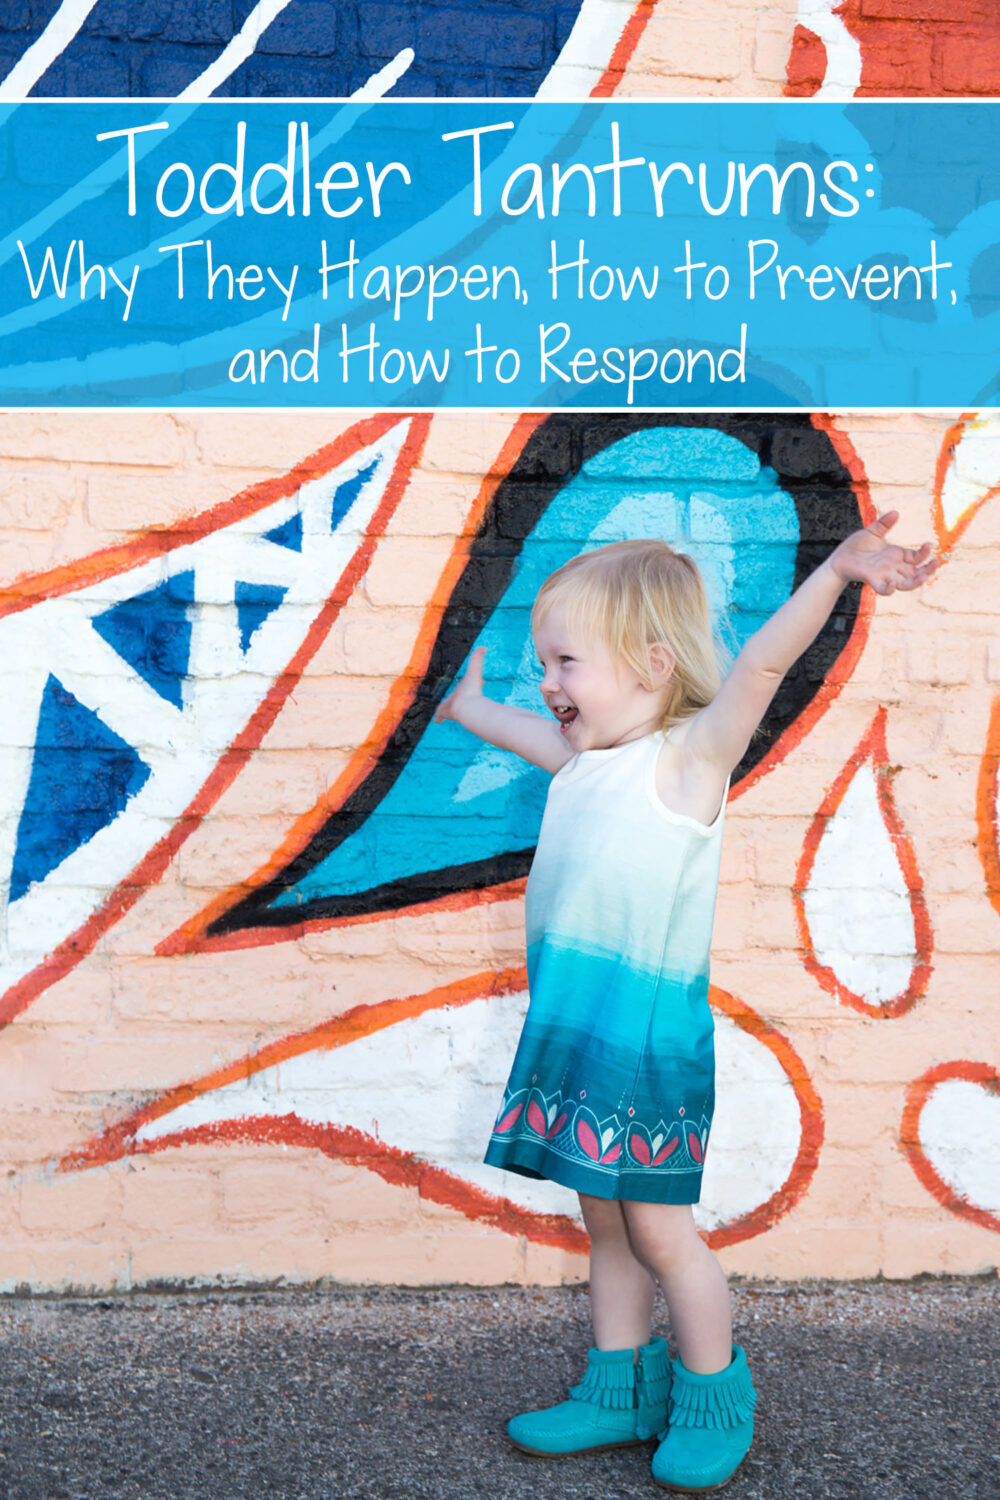 Toddler Temper Tantrums: why they happen, how to prevent them, and how to respond!